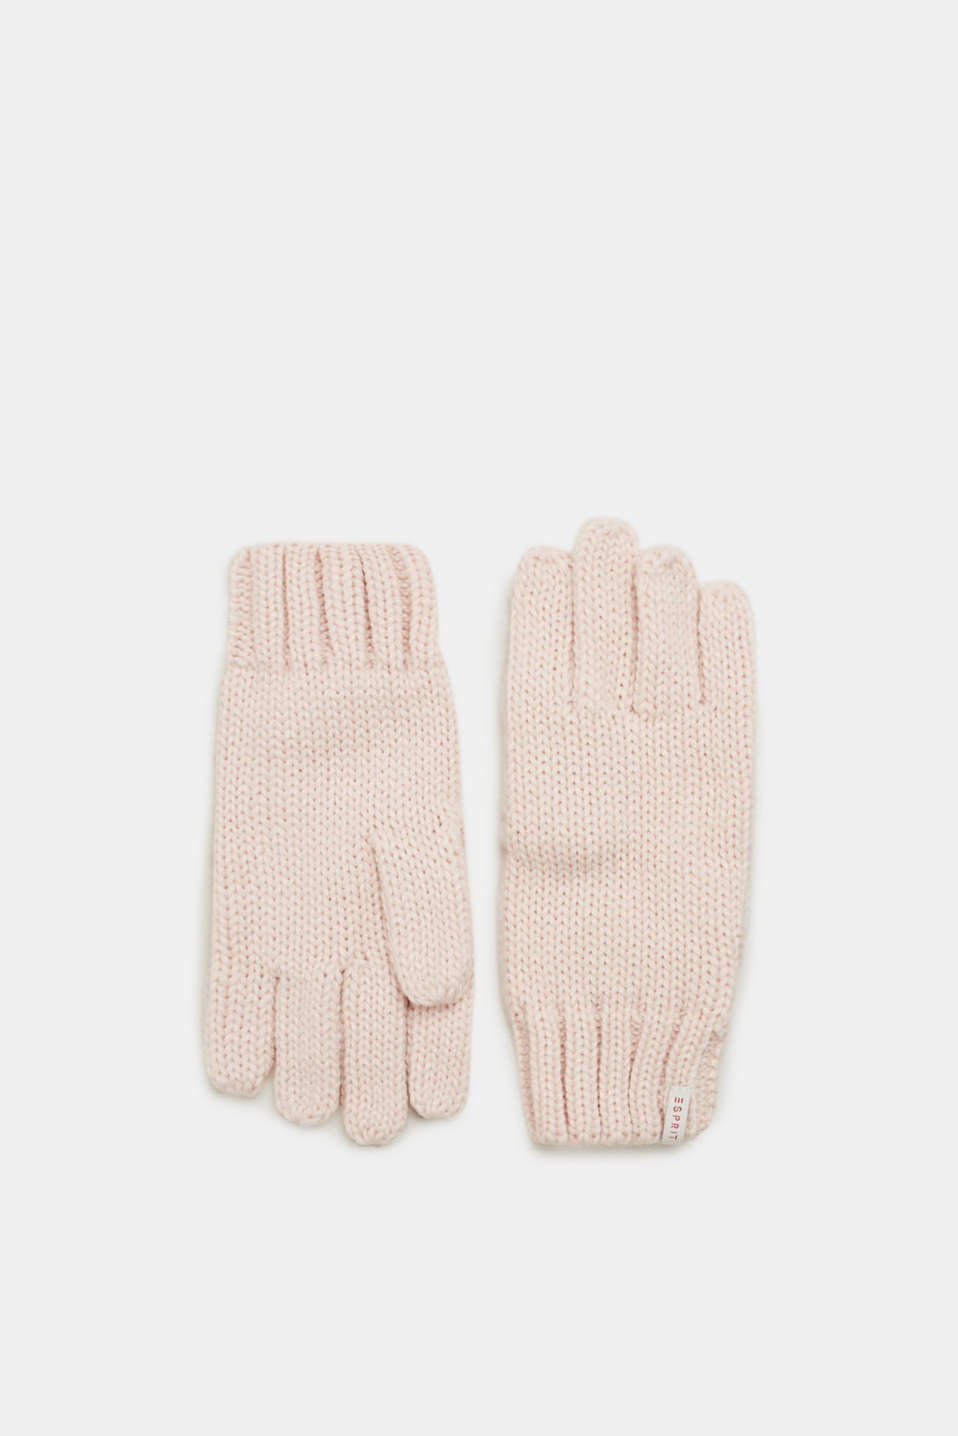 Esprit - Basic gloves knitted in soft yarn